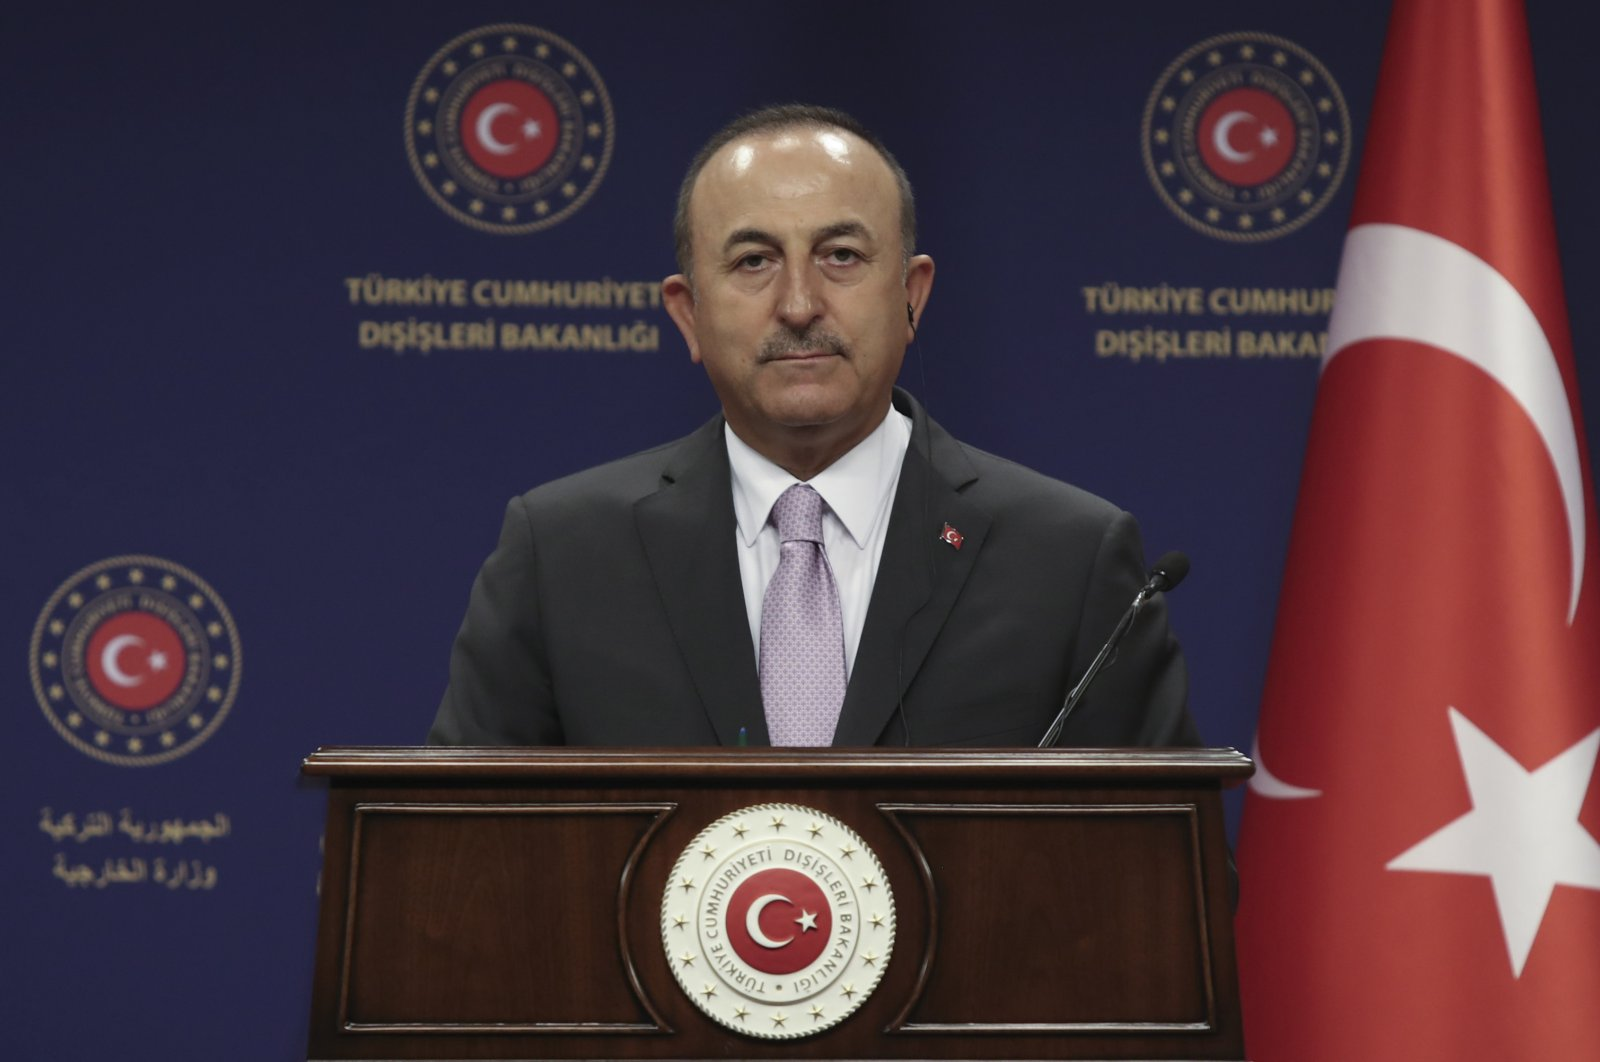 Turkey's Foreign Minister Mevlüt Çavuşoğlu speaks during a news conference with Jean Claude Gakosso, Minister of Foreign Affairs of the Republic of Congo, in Ankara, Sept. 8, 2020. (AP Photo)